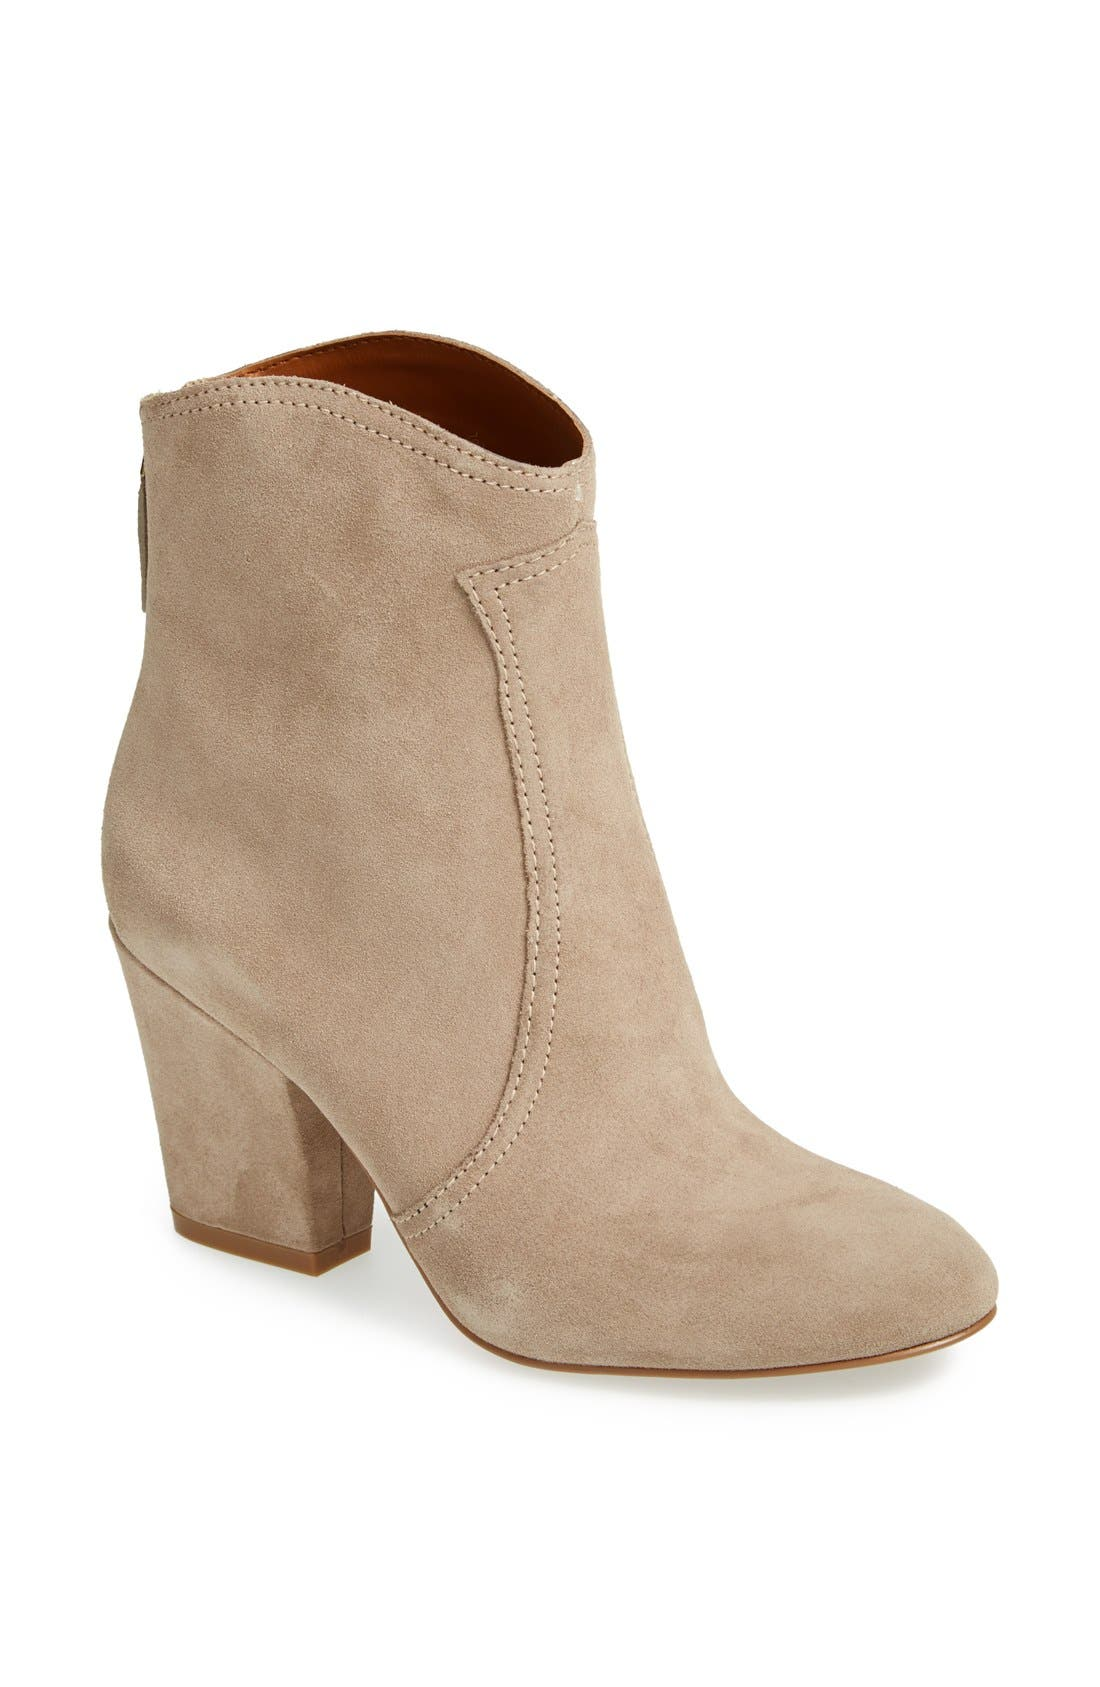 Main Image - Nine West 'Dashiell' Leather Boot